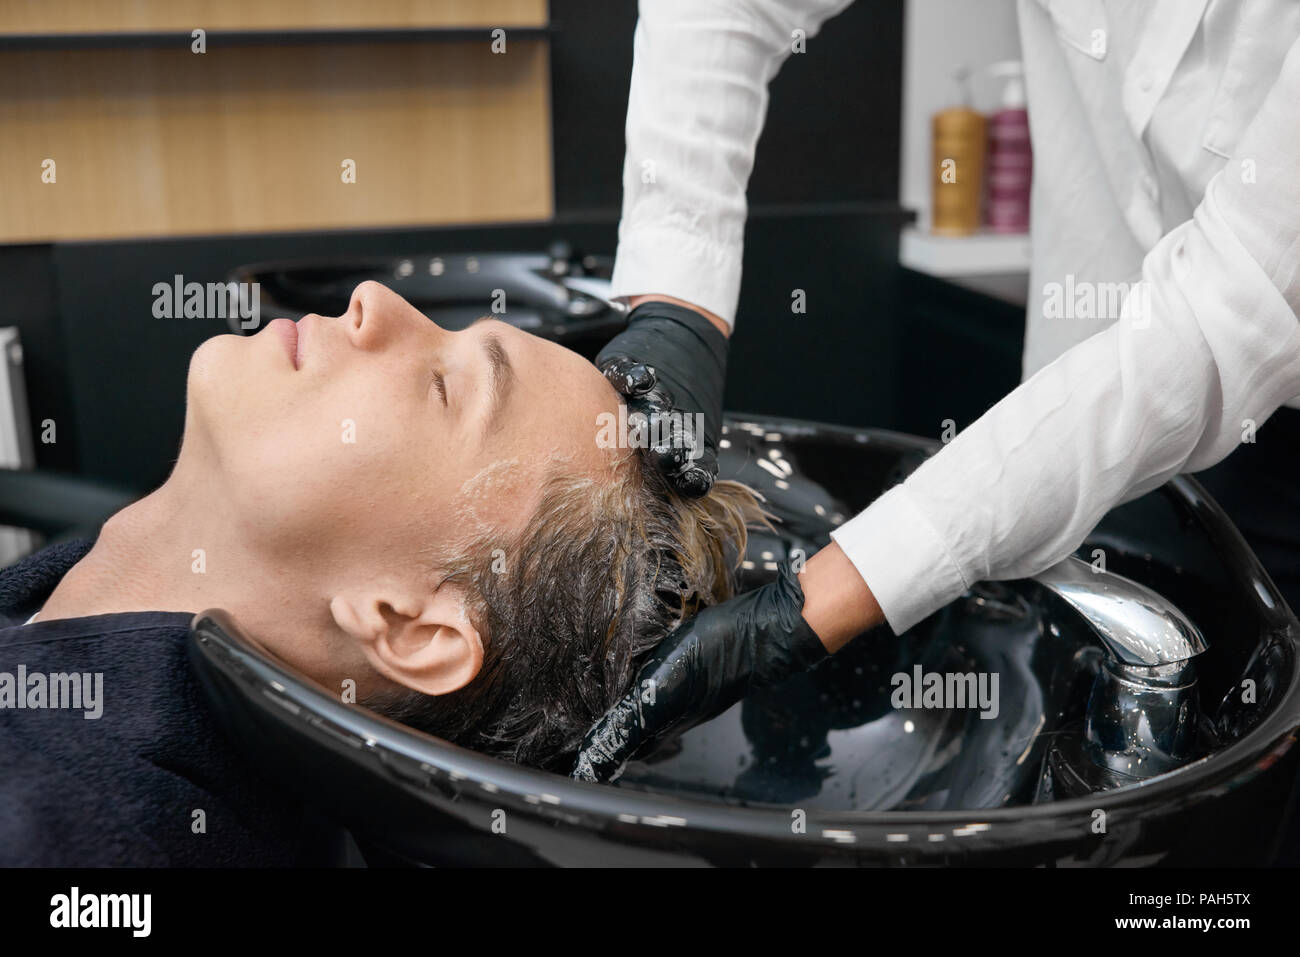 Hairstylist washing client's hair in a beaty salon's sink. Client sitting with his head laying in the black ceramic sink with closed eyes. Feeling good, relaxing. Hairdresser wearing black gloves. - Stock Image